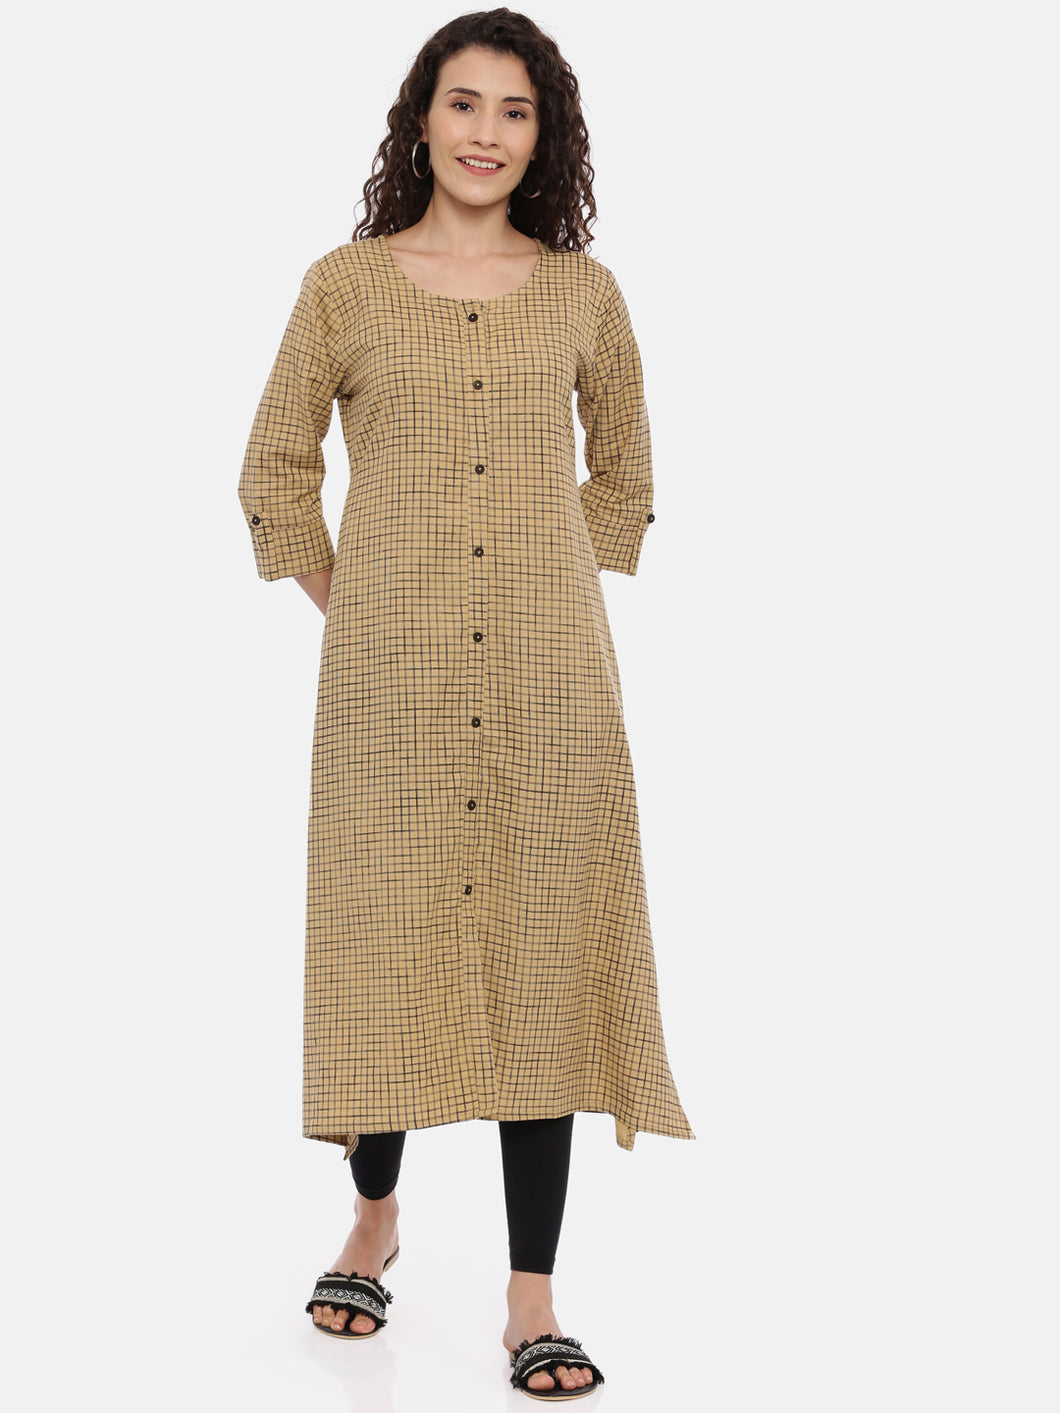 Arana Women's Plain Cotton Flax Front Full Button Straight Cut Kurti With Roll Up Sleeve